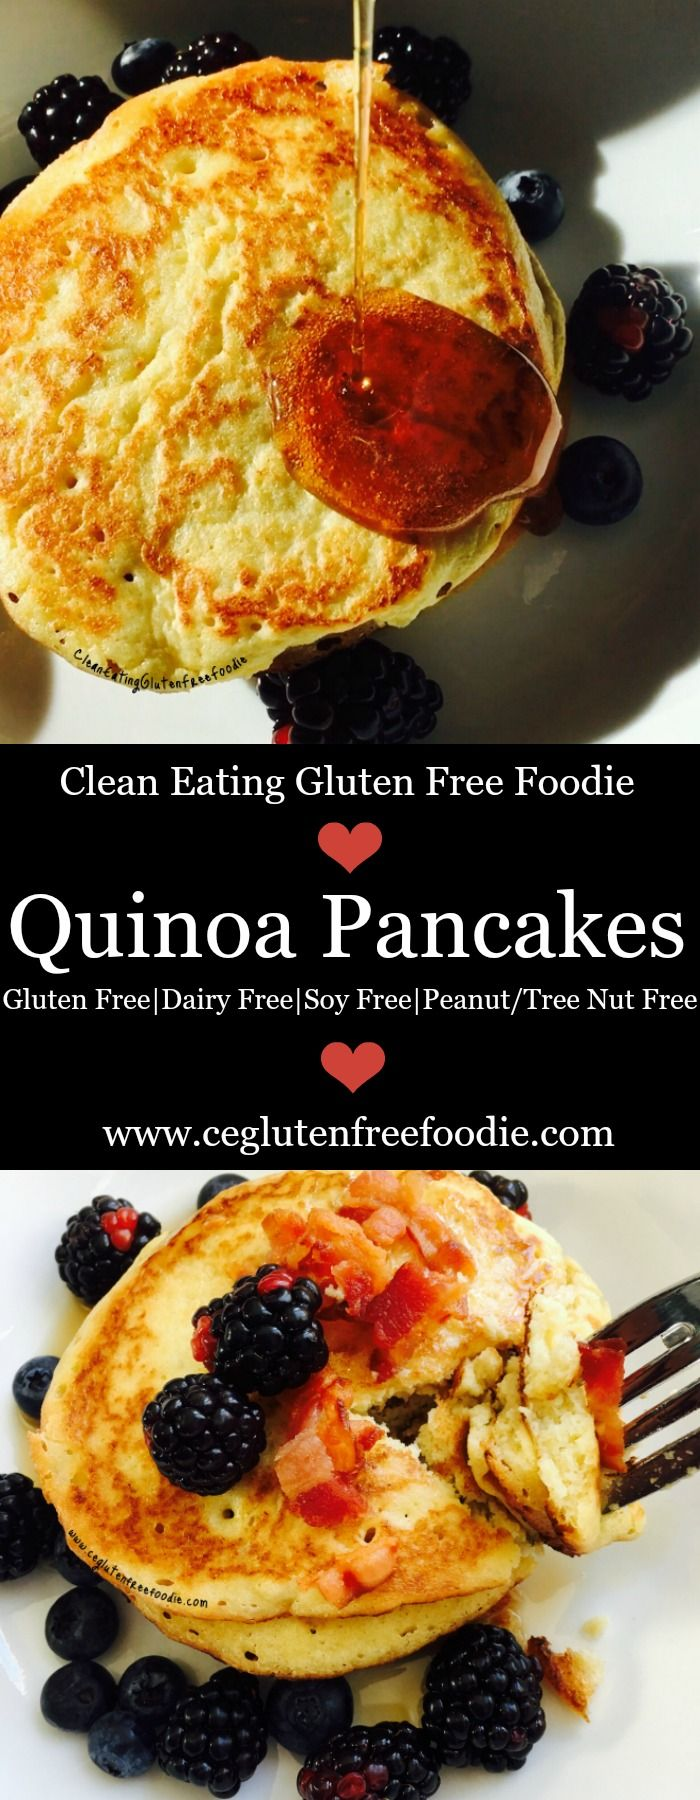 Homemade quinoa pancakes made with leftover quinoa. This recipe is easy to make, gluten free, dairy free, soy free, peanut and tree nut free. My kids love this recipe and hopefully your kids will too. (real food and 21 day fix approved)